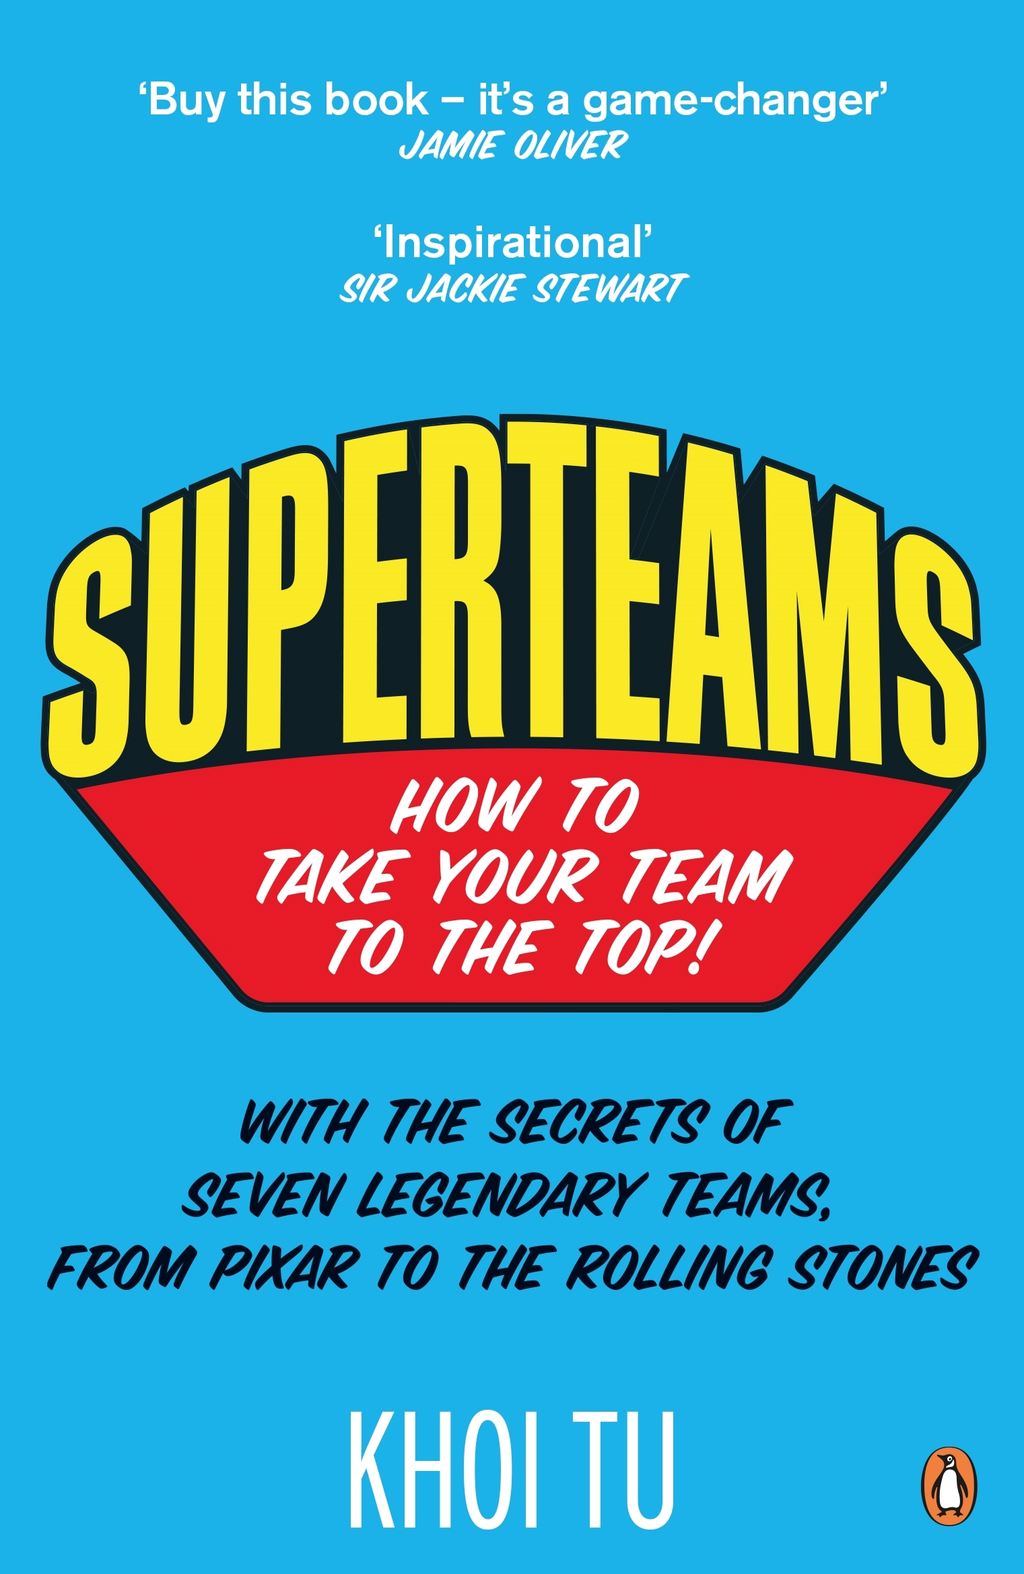 Superteams The Secrets of Stellar Performance from Seven Legendary Teams